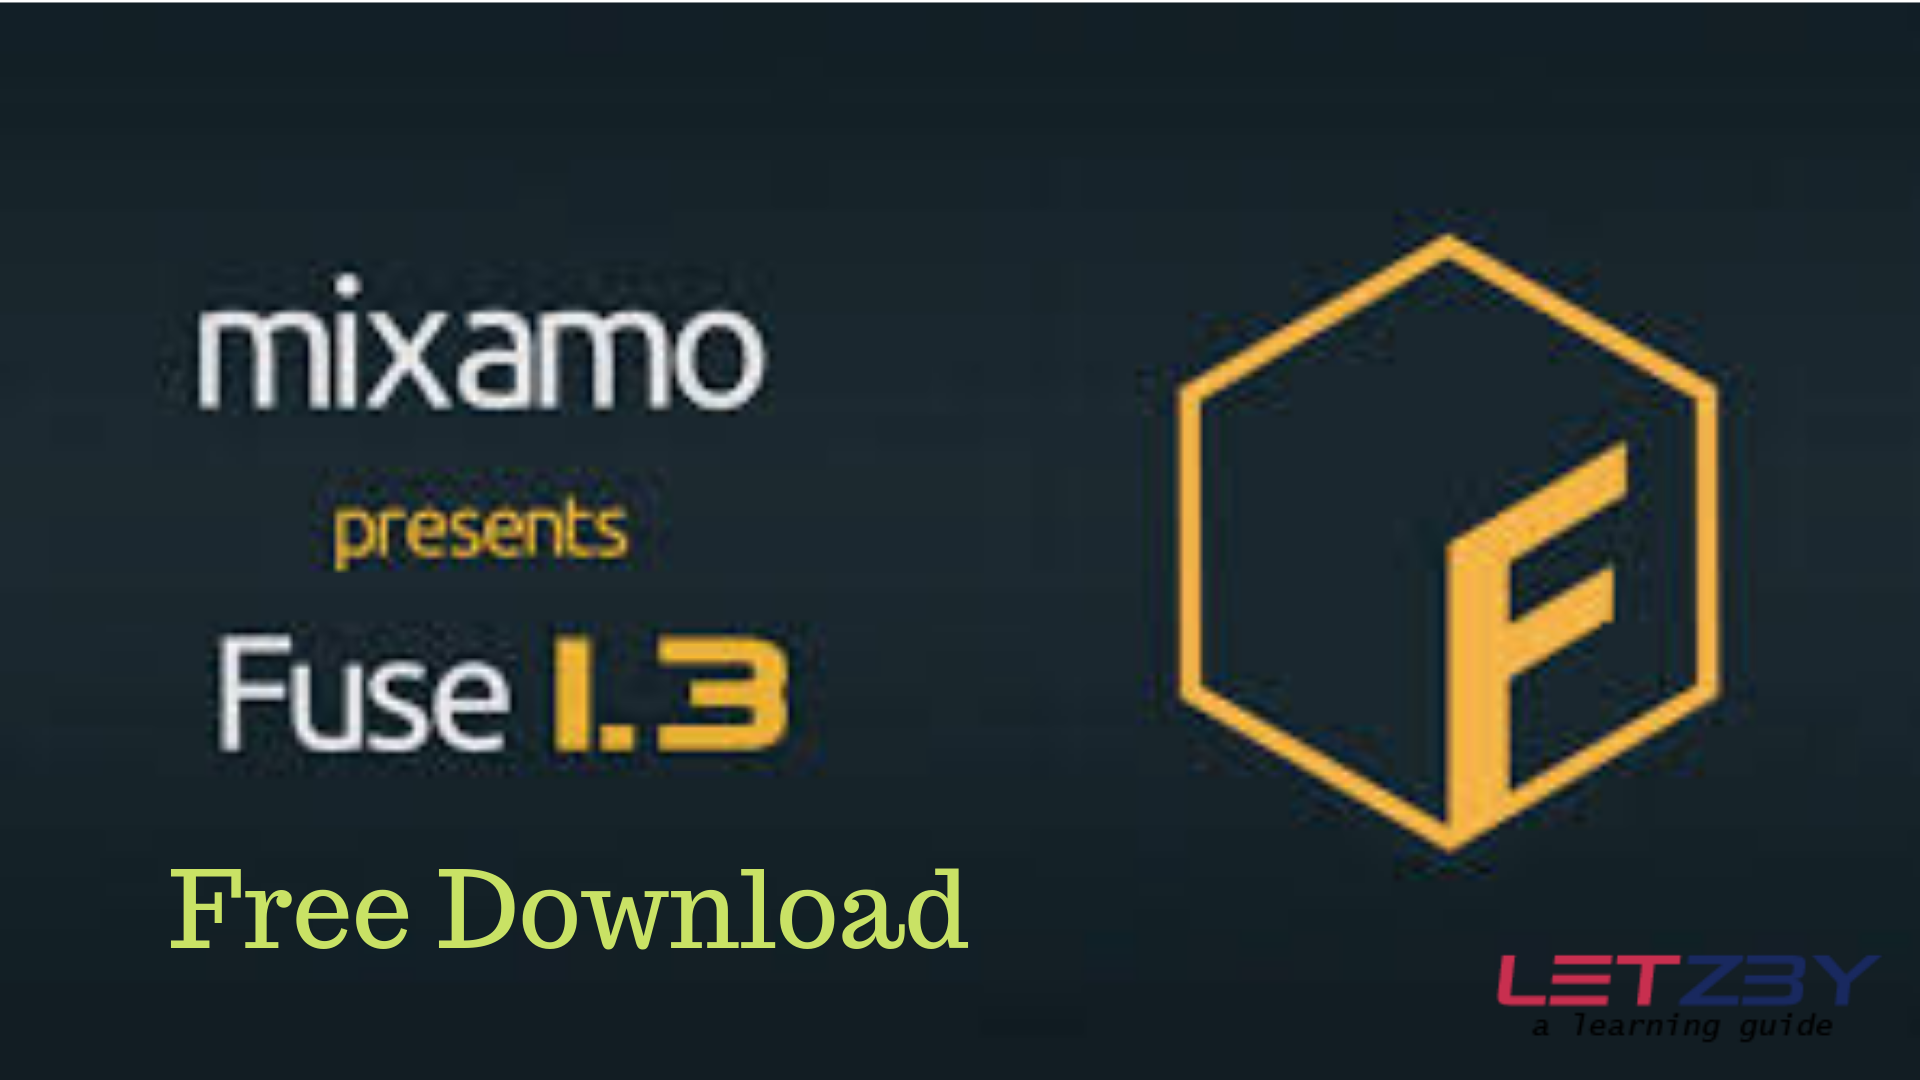 Mixamo Fuse 1 3 (Free Download) Mixamo Fuse is a very useful 3D